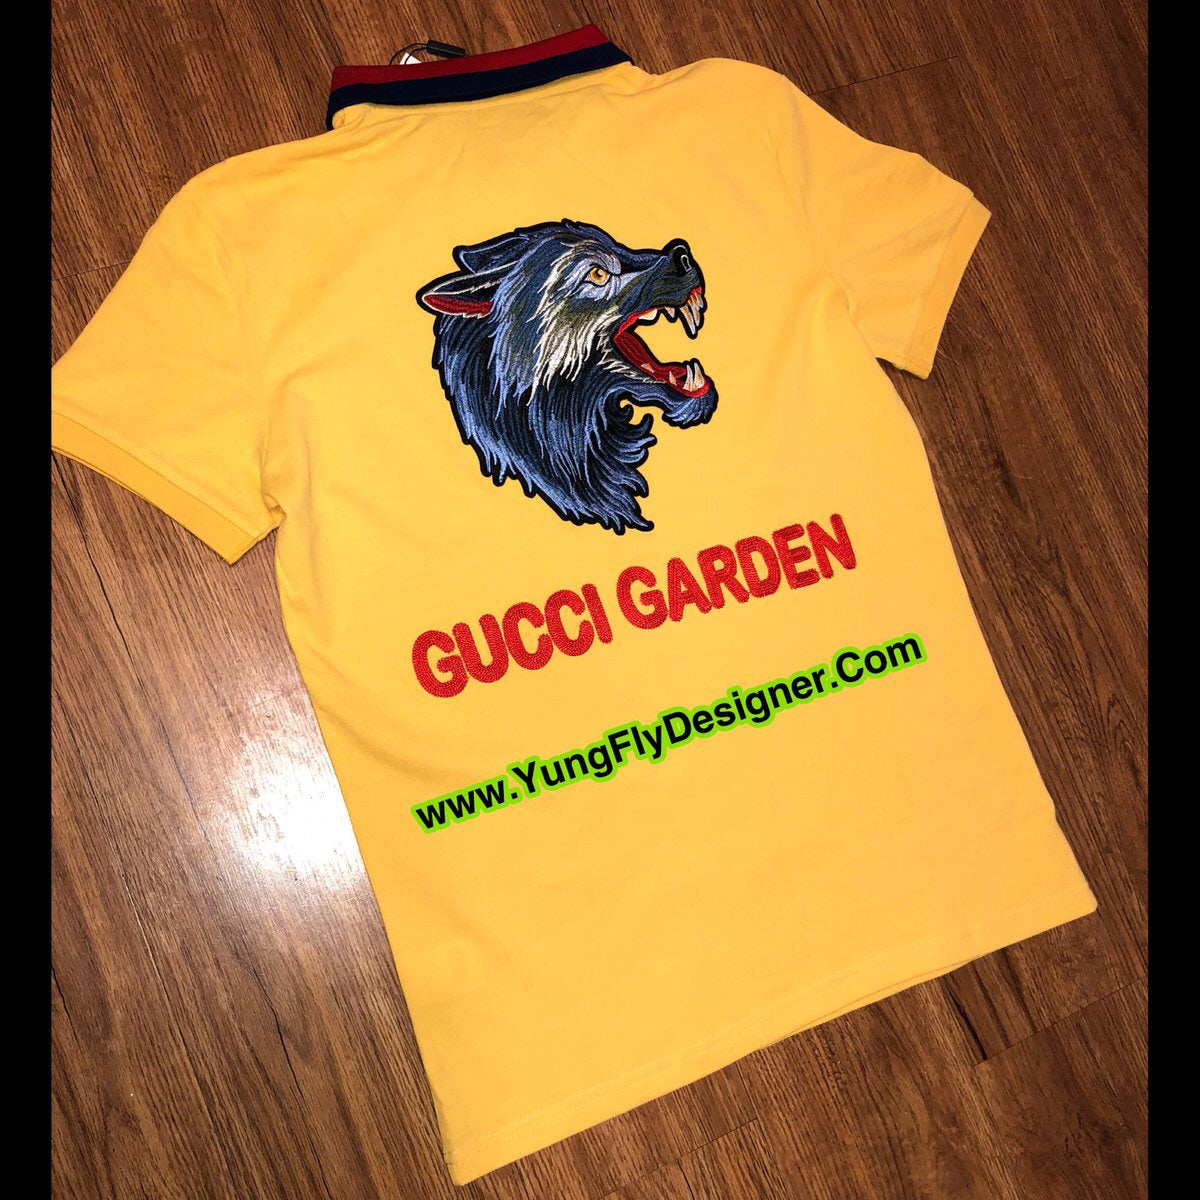 b28aa5cbeff8 Yellow Gucci Garden Polo - $95.00 – Young Fly Designer